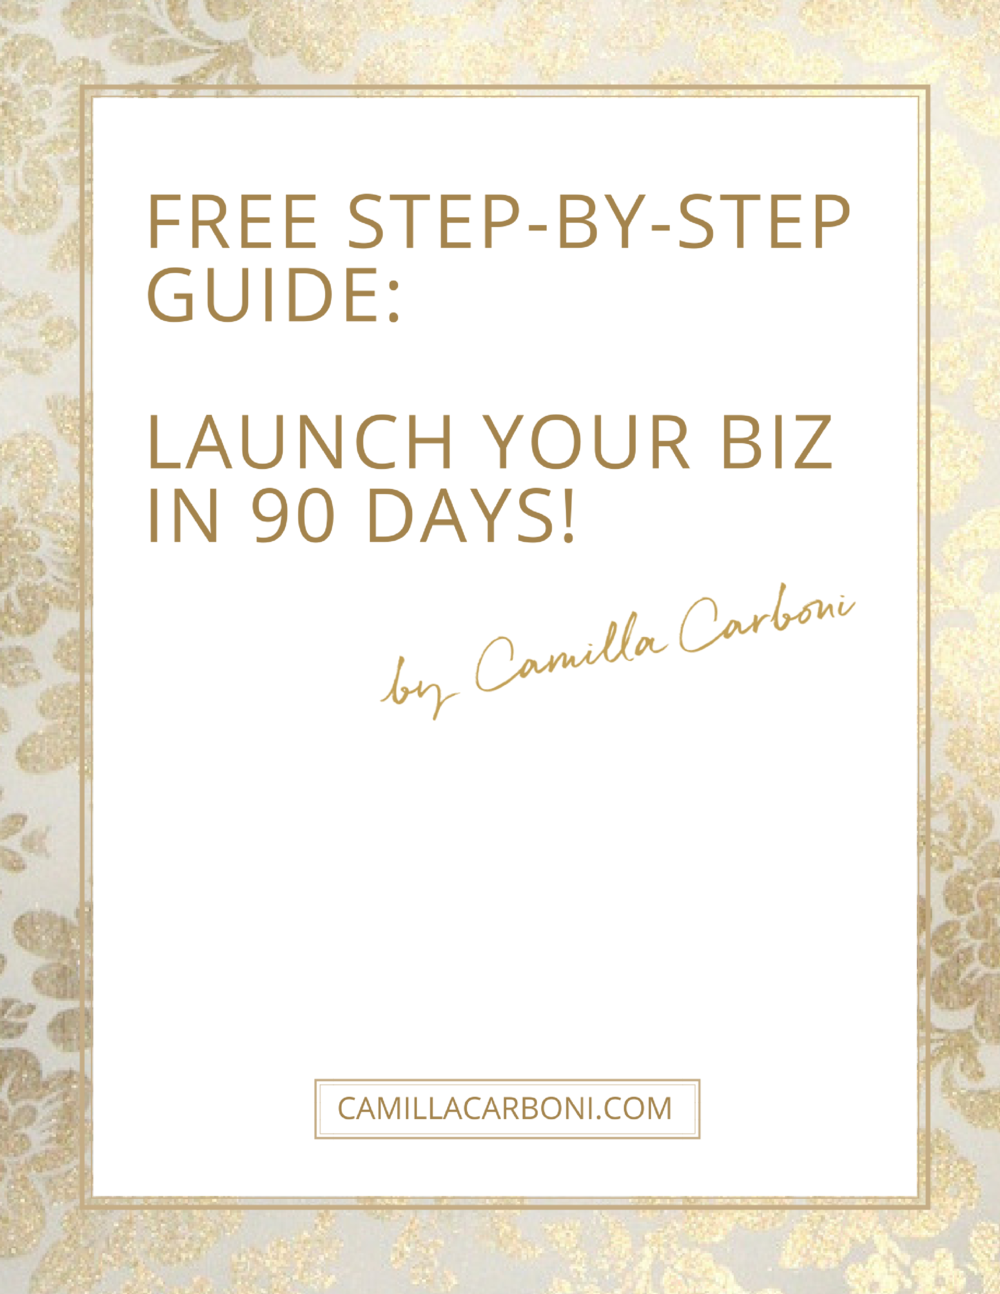 Step-by-Step Guide To Launching Your Biz in 90 Days (1).png